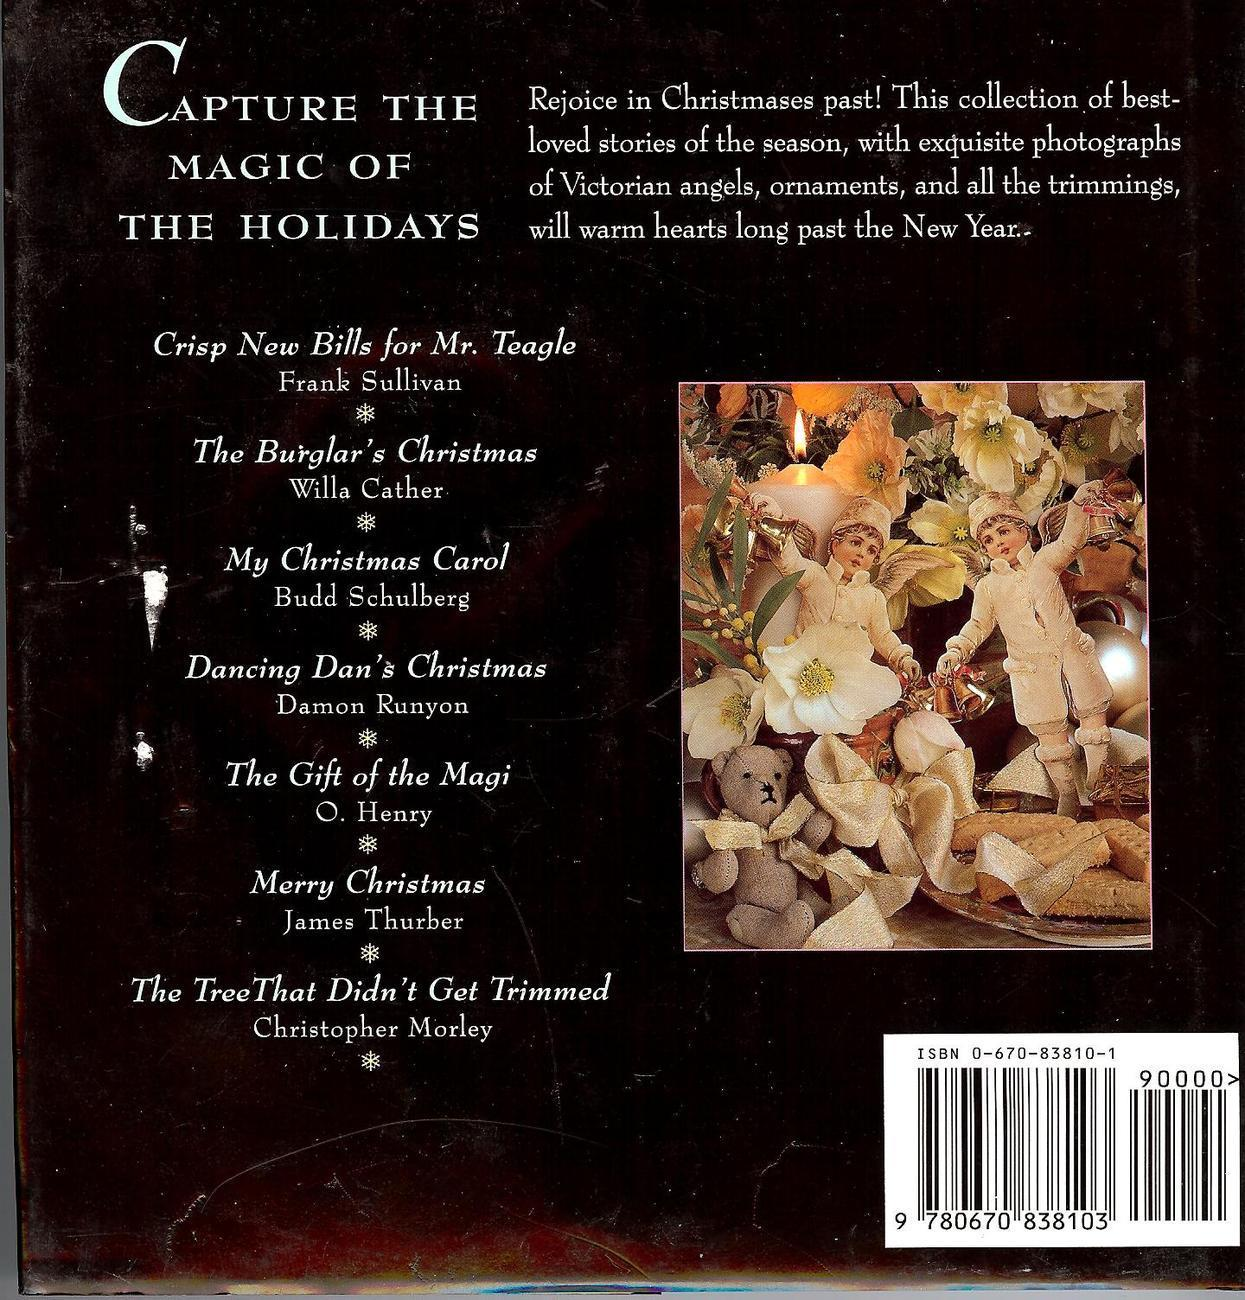 Christmas book Capturing The Magic of The Holidays by Celebrated Authors, 1st Ed